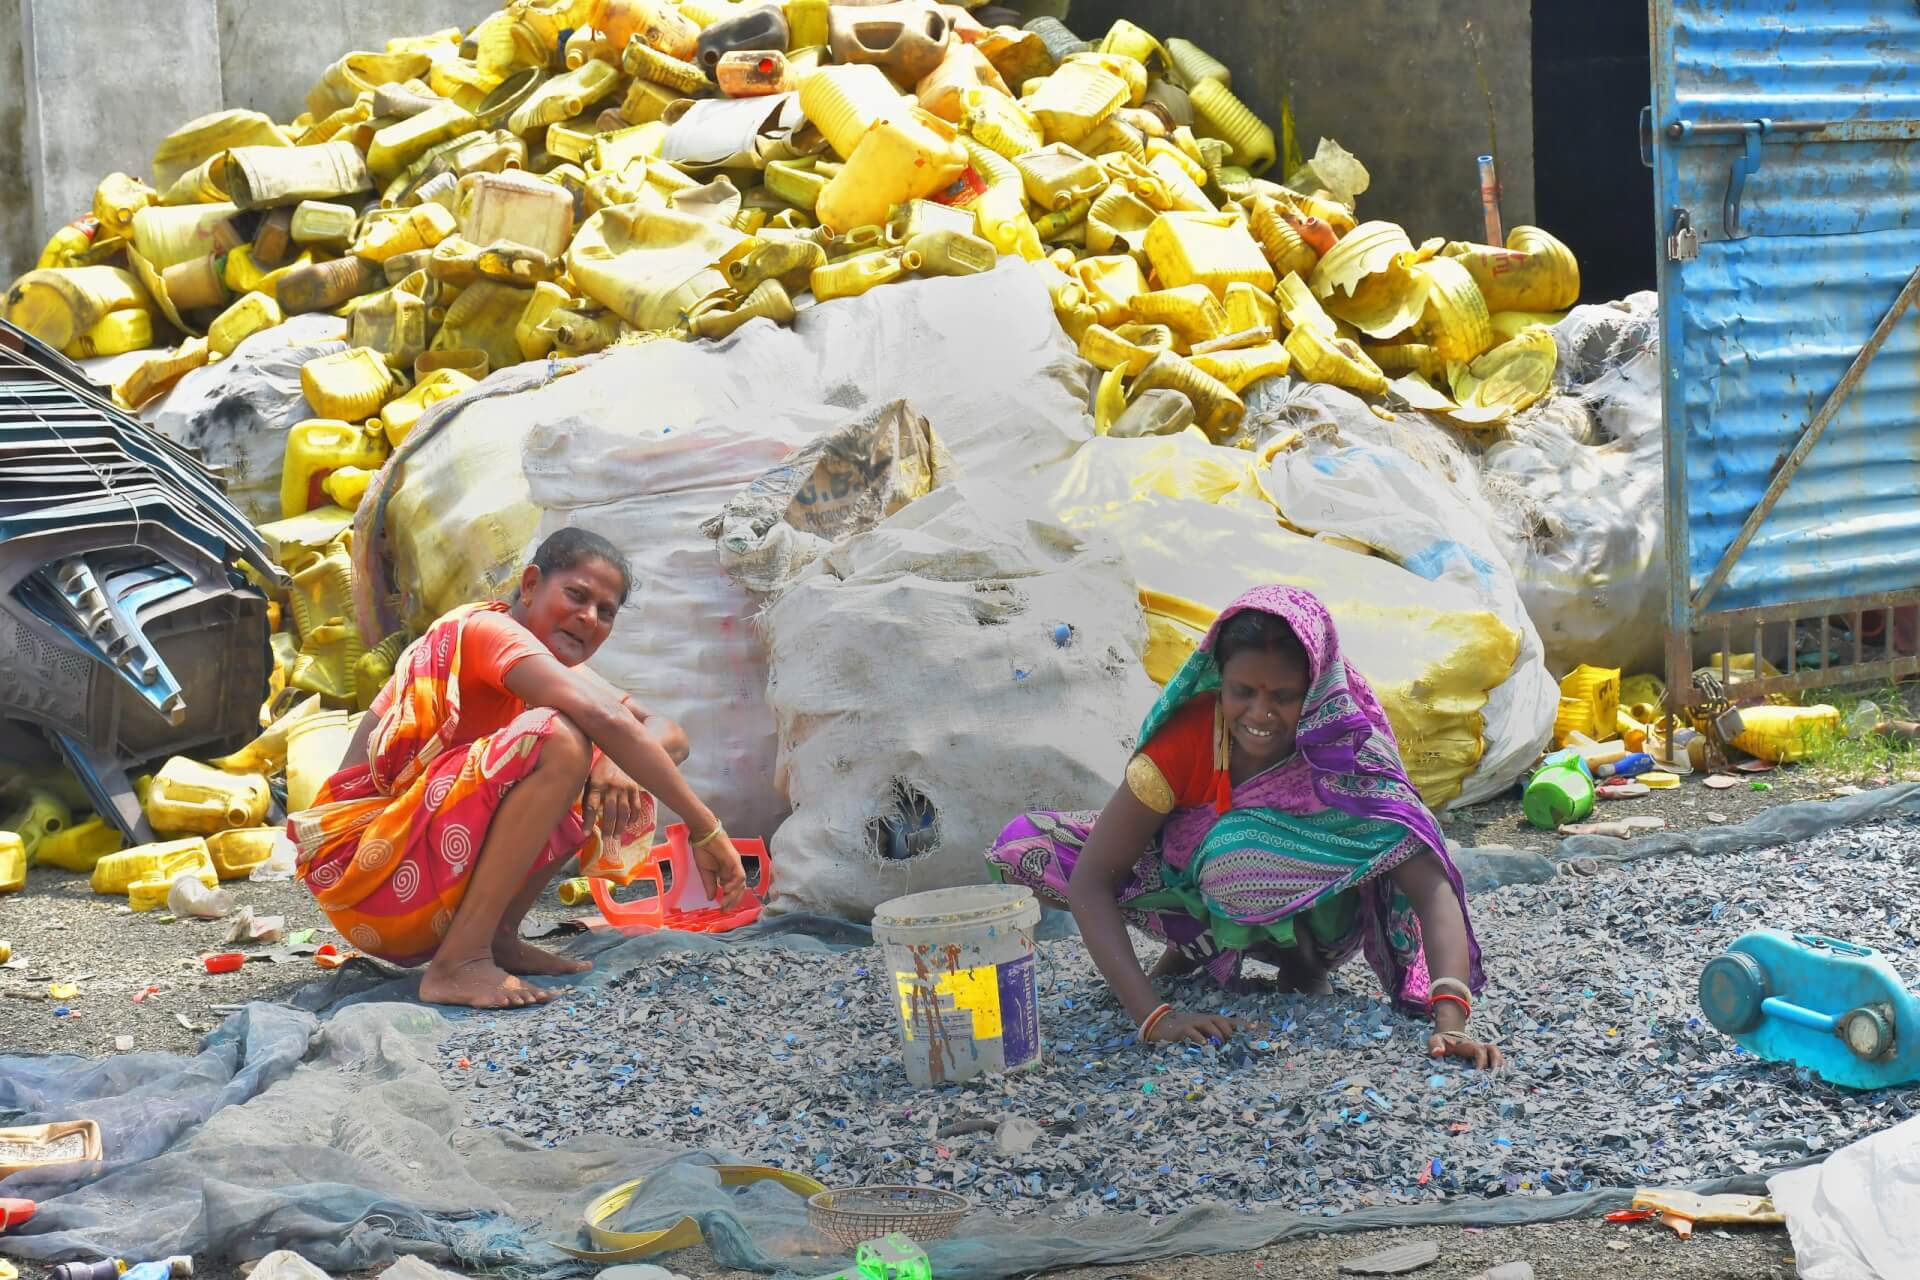 Women in Rampurhat in West Bengal, India, sort plastic waste ready for recycling, to prevent it from polluting the environment and to provide an income for their families, by Enamul Kabir